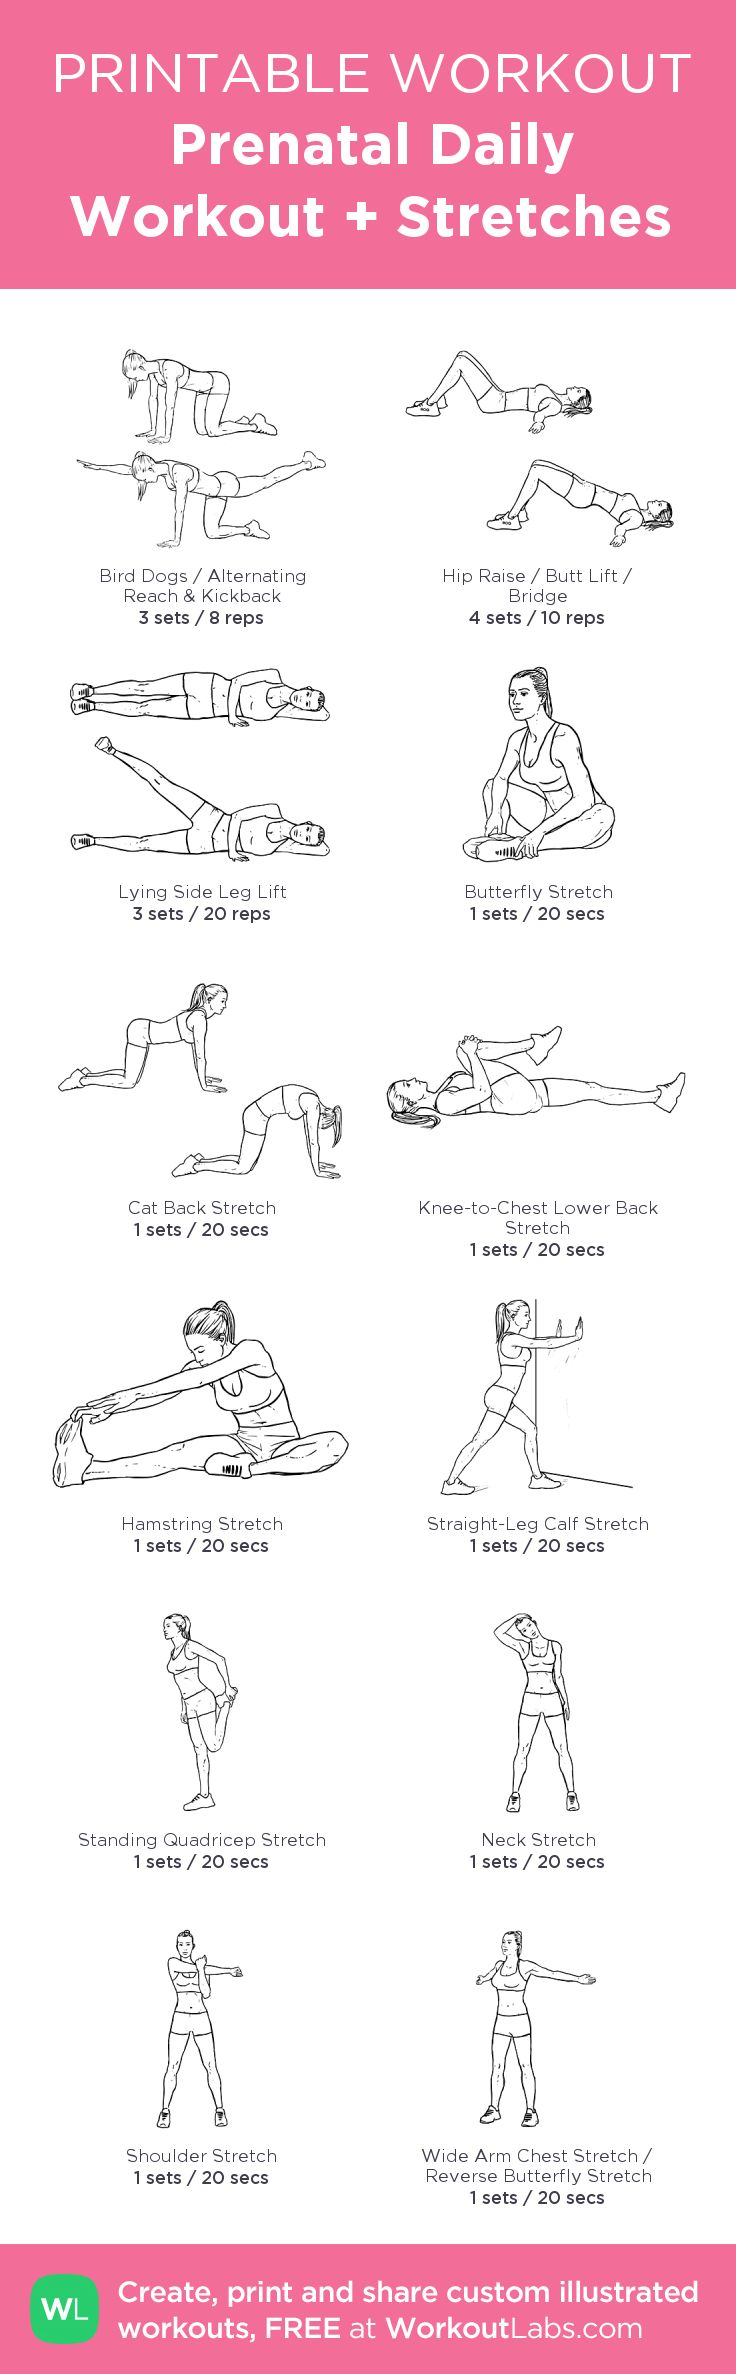 Prenatal Daily Workout + Stretches: my visual workout created at…